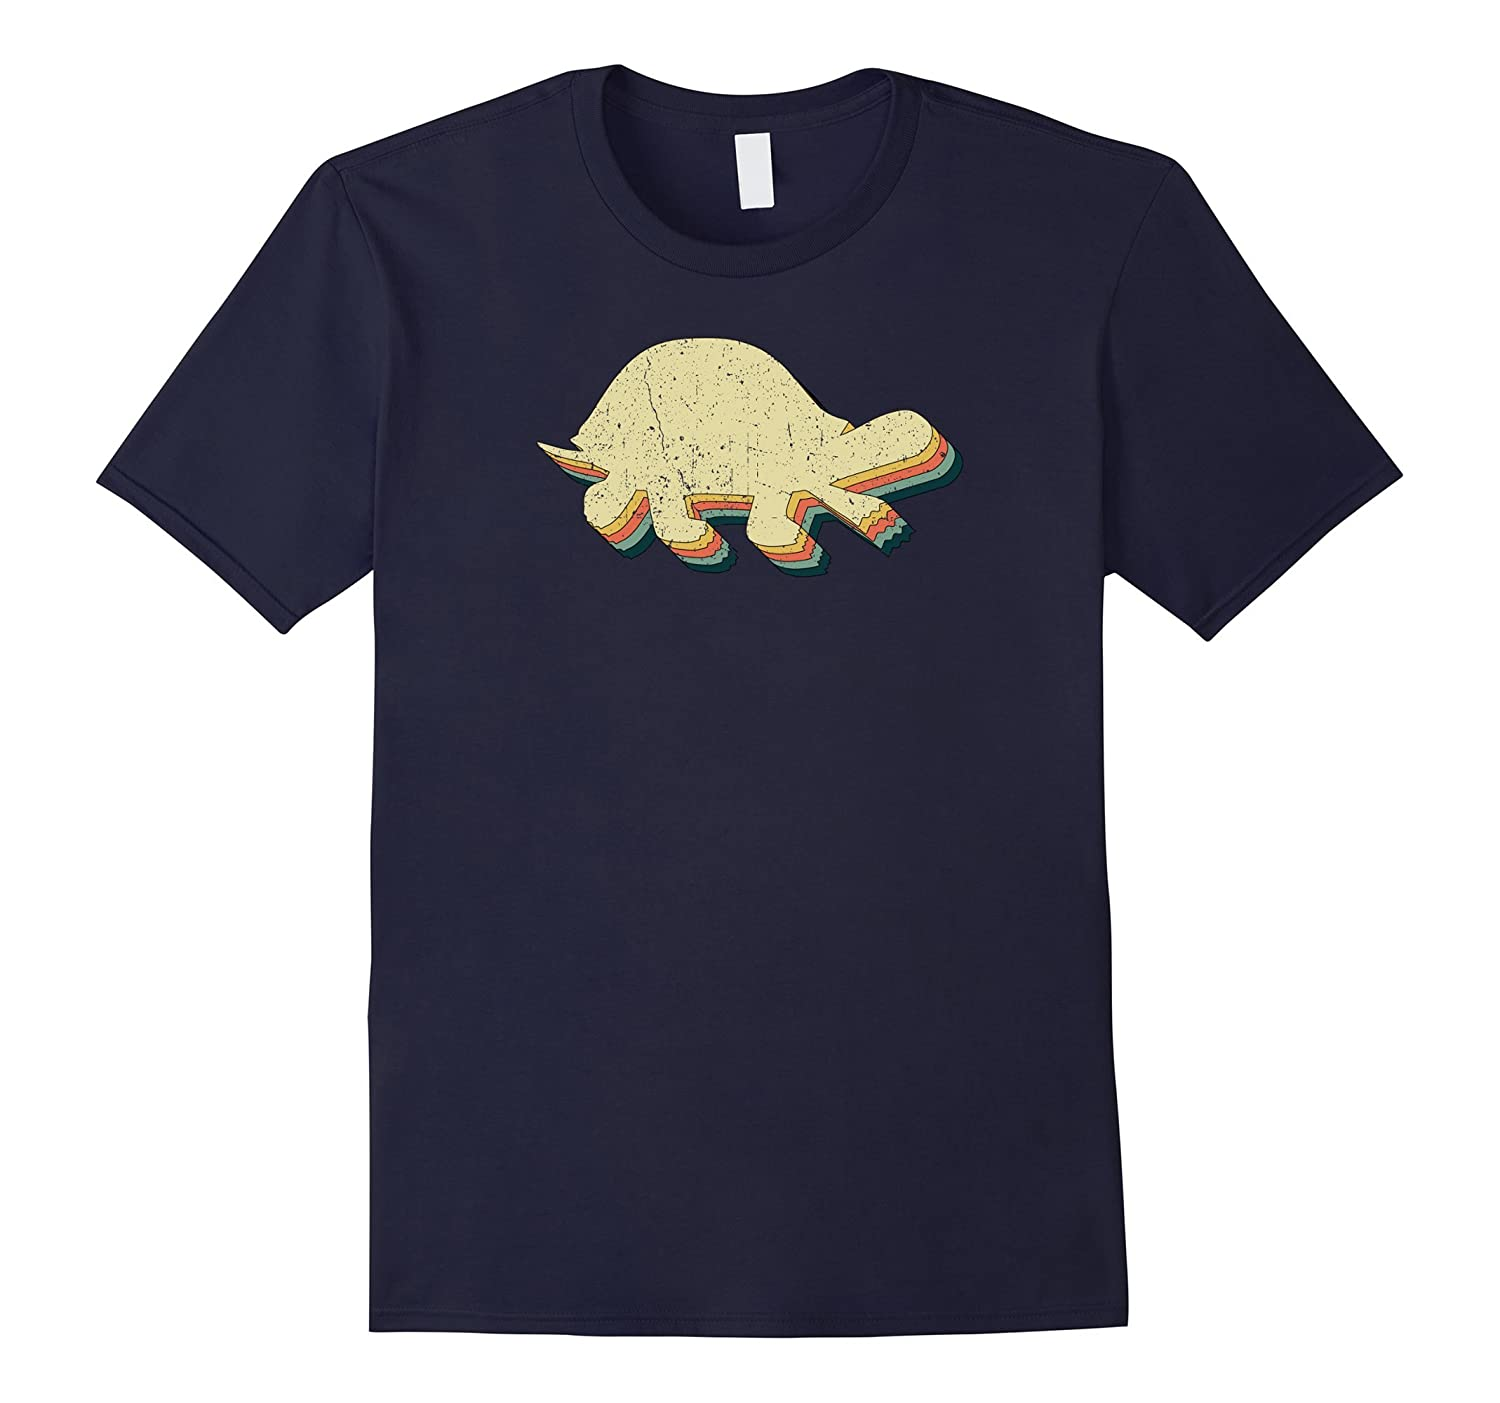 Retro Vintage Box Turtle Funny T-Shirt For Box Turtle Lover-4LVS